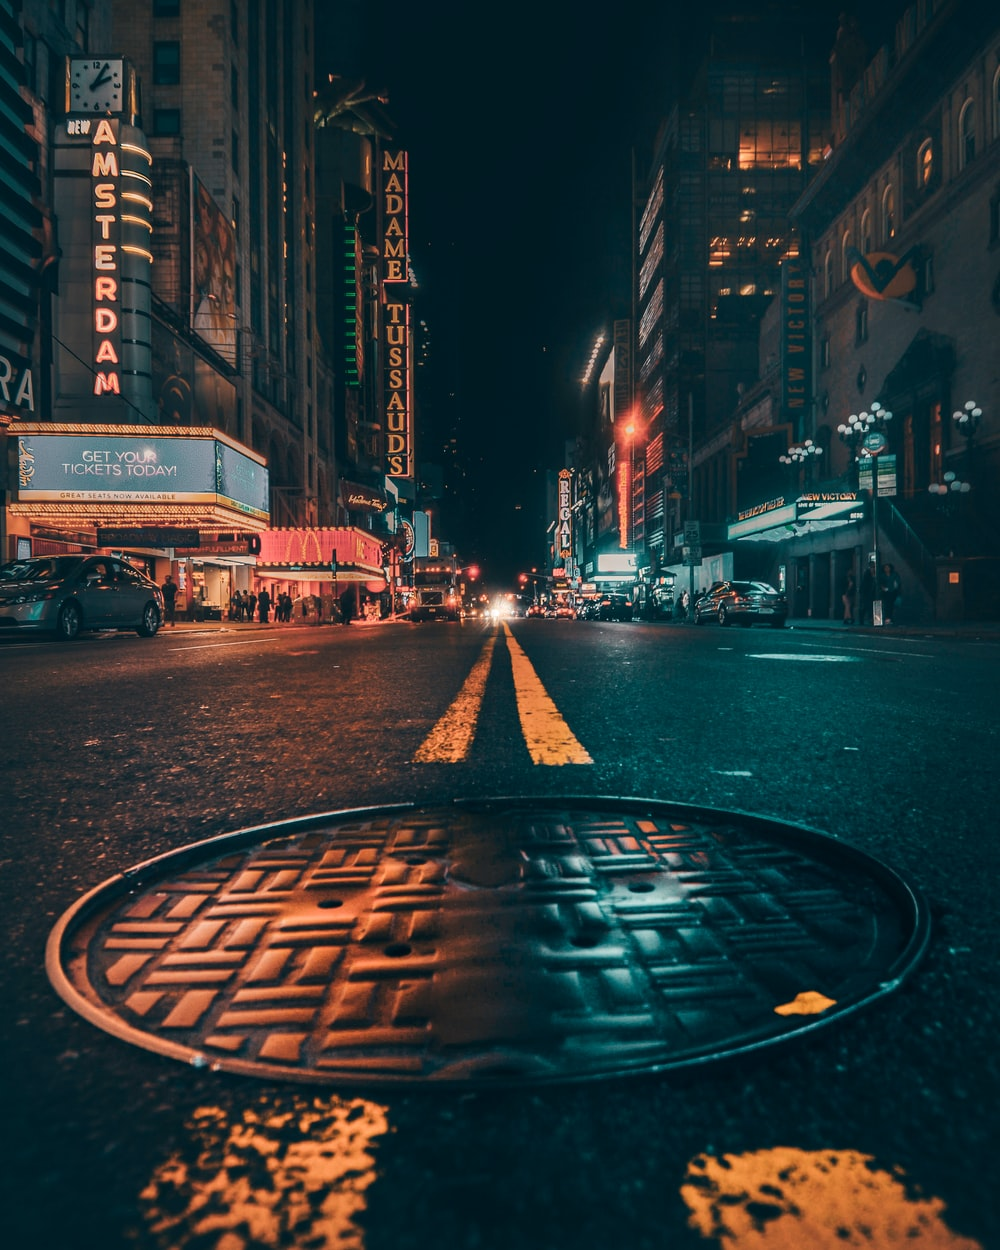 Download Free Images On Unsplash: Manhole, Street, Avenue And Pavement HD Photo By Yeshi